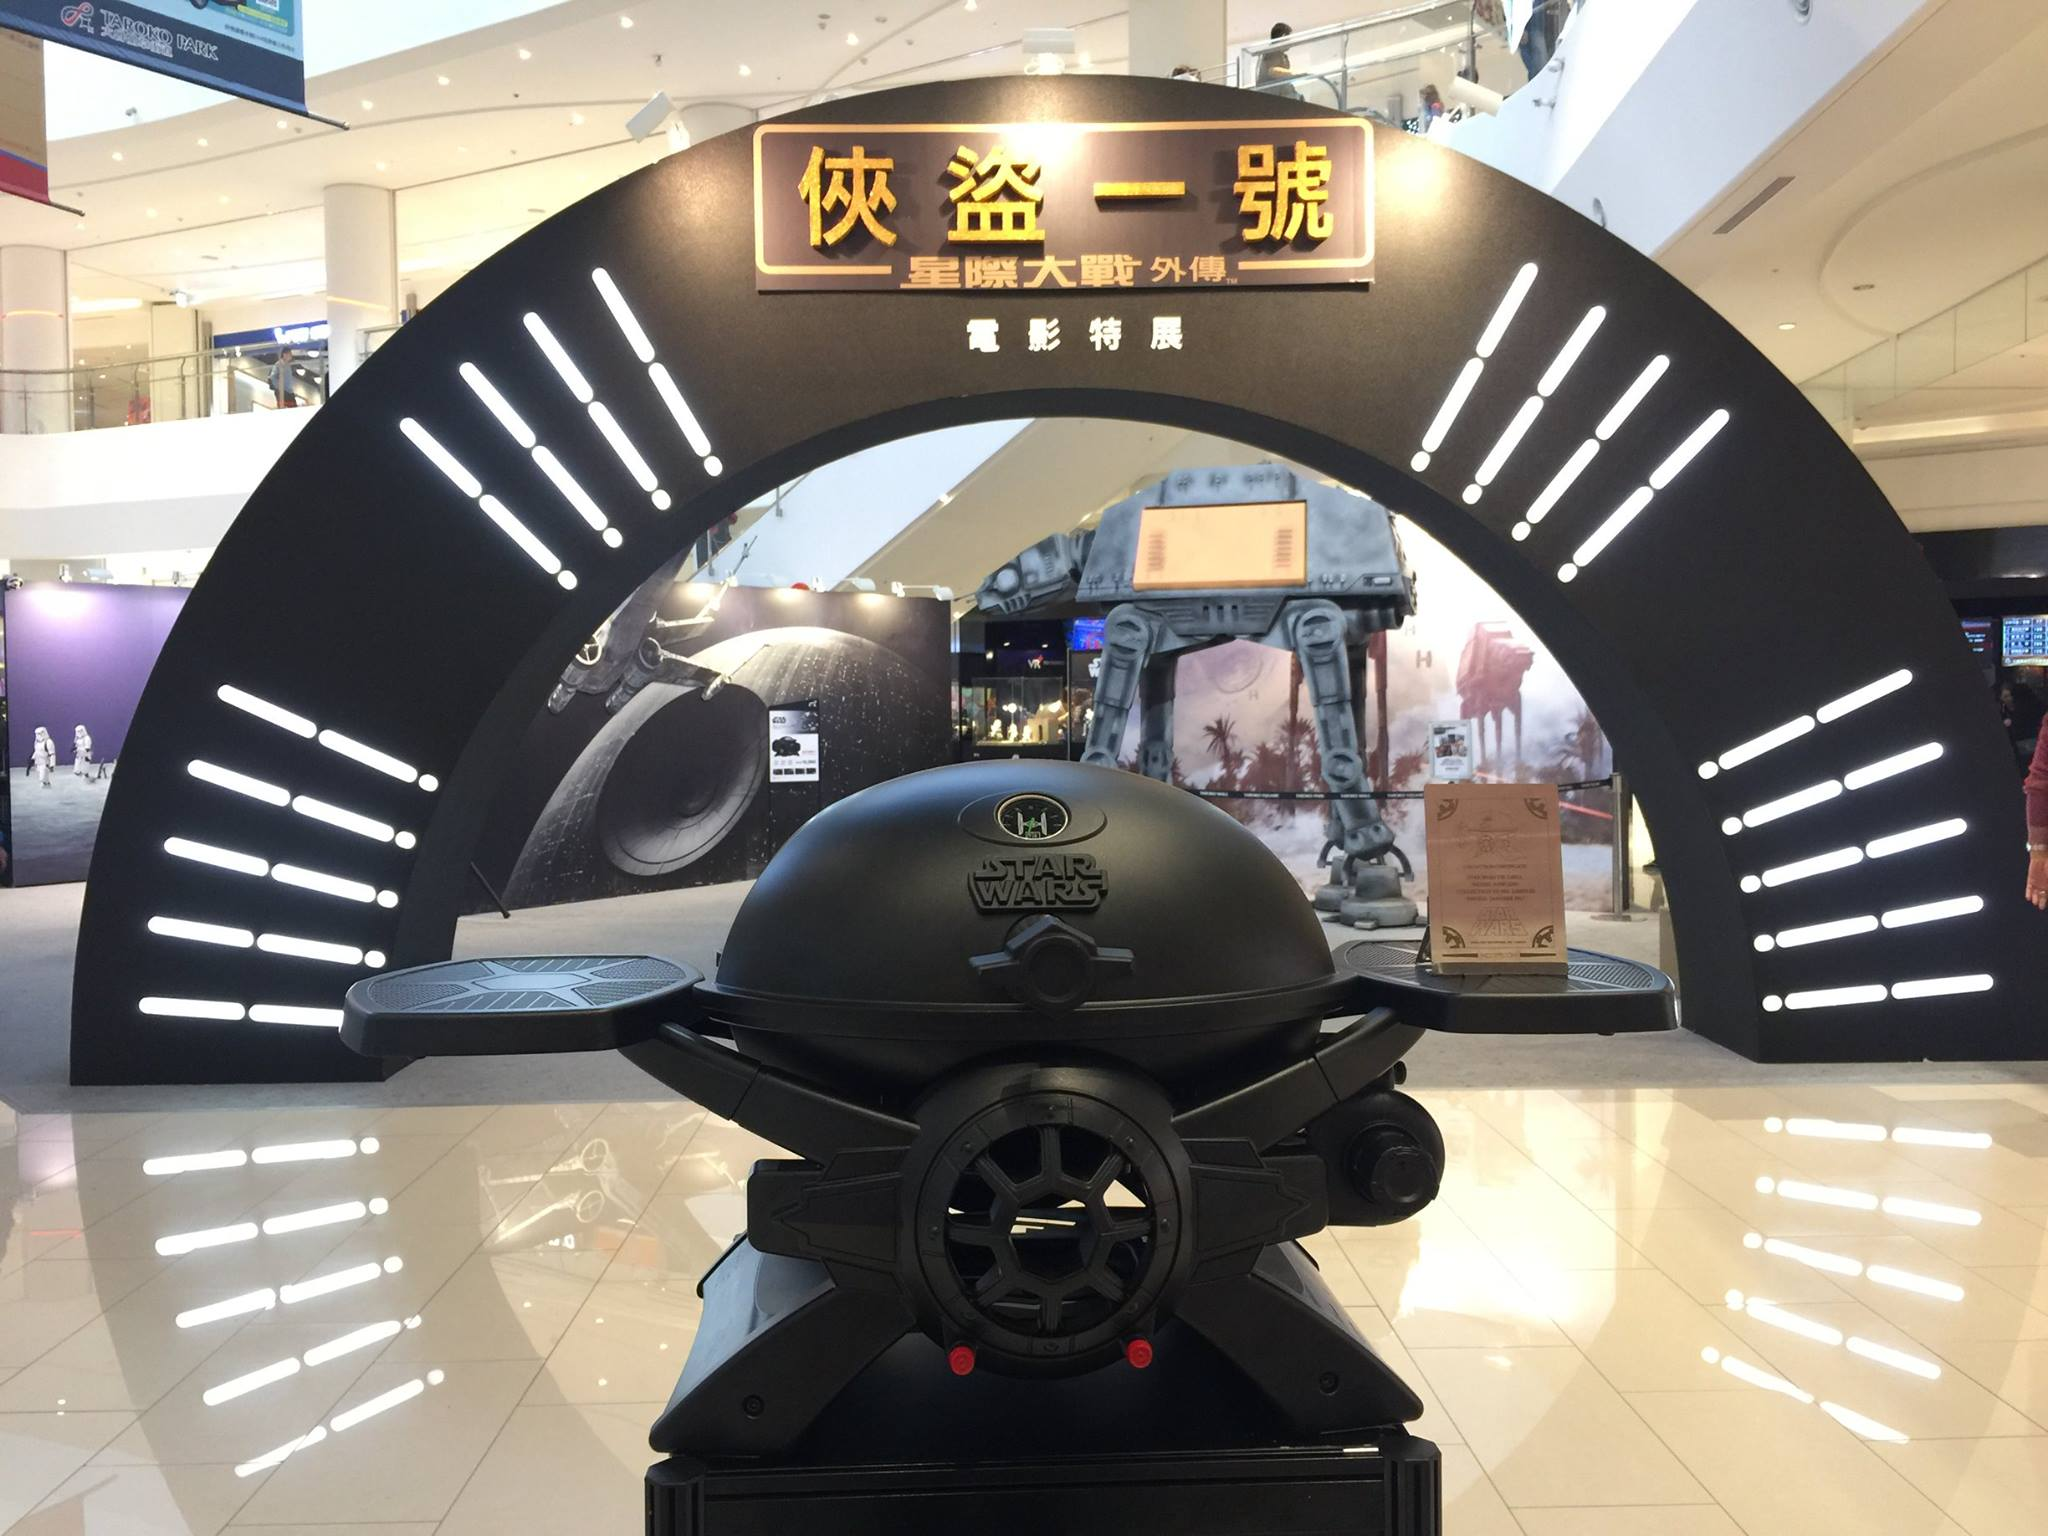 Star Wars Grill Featured in Taiwan